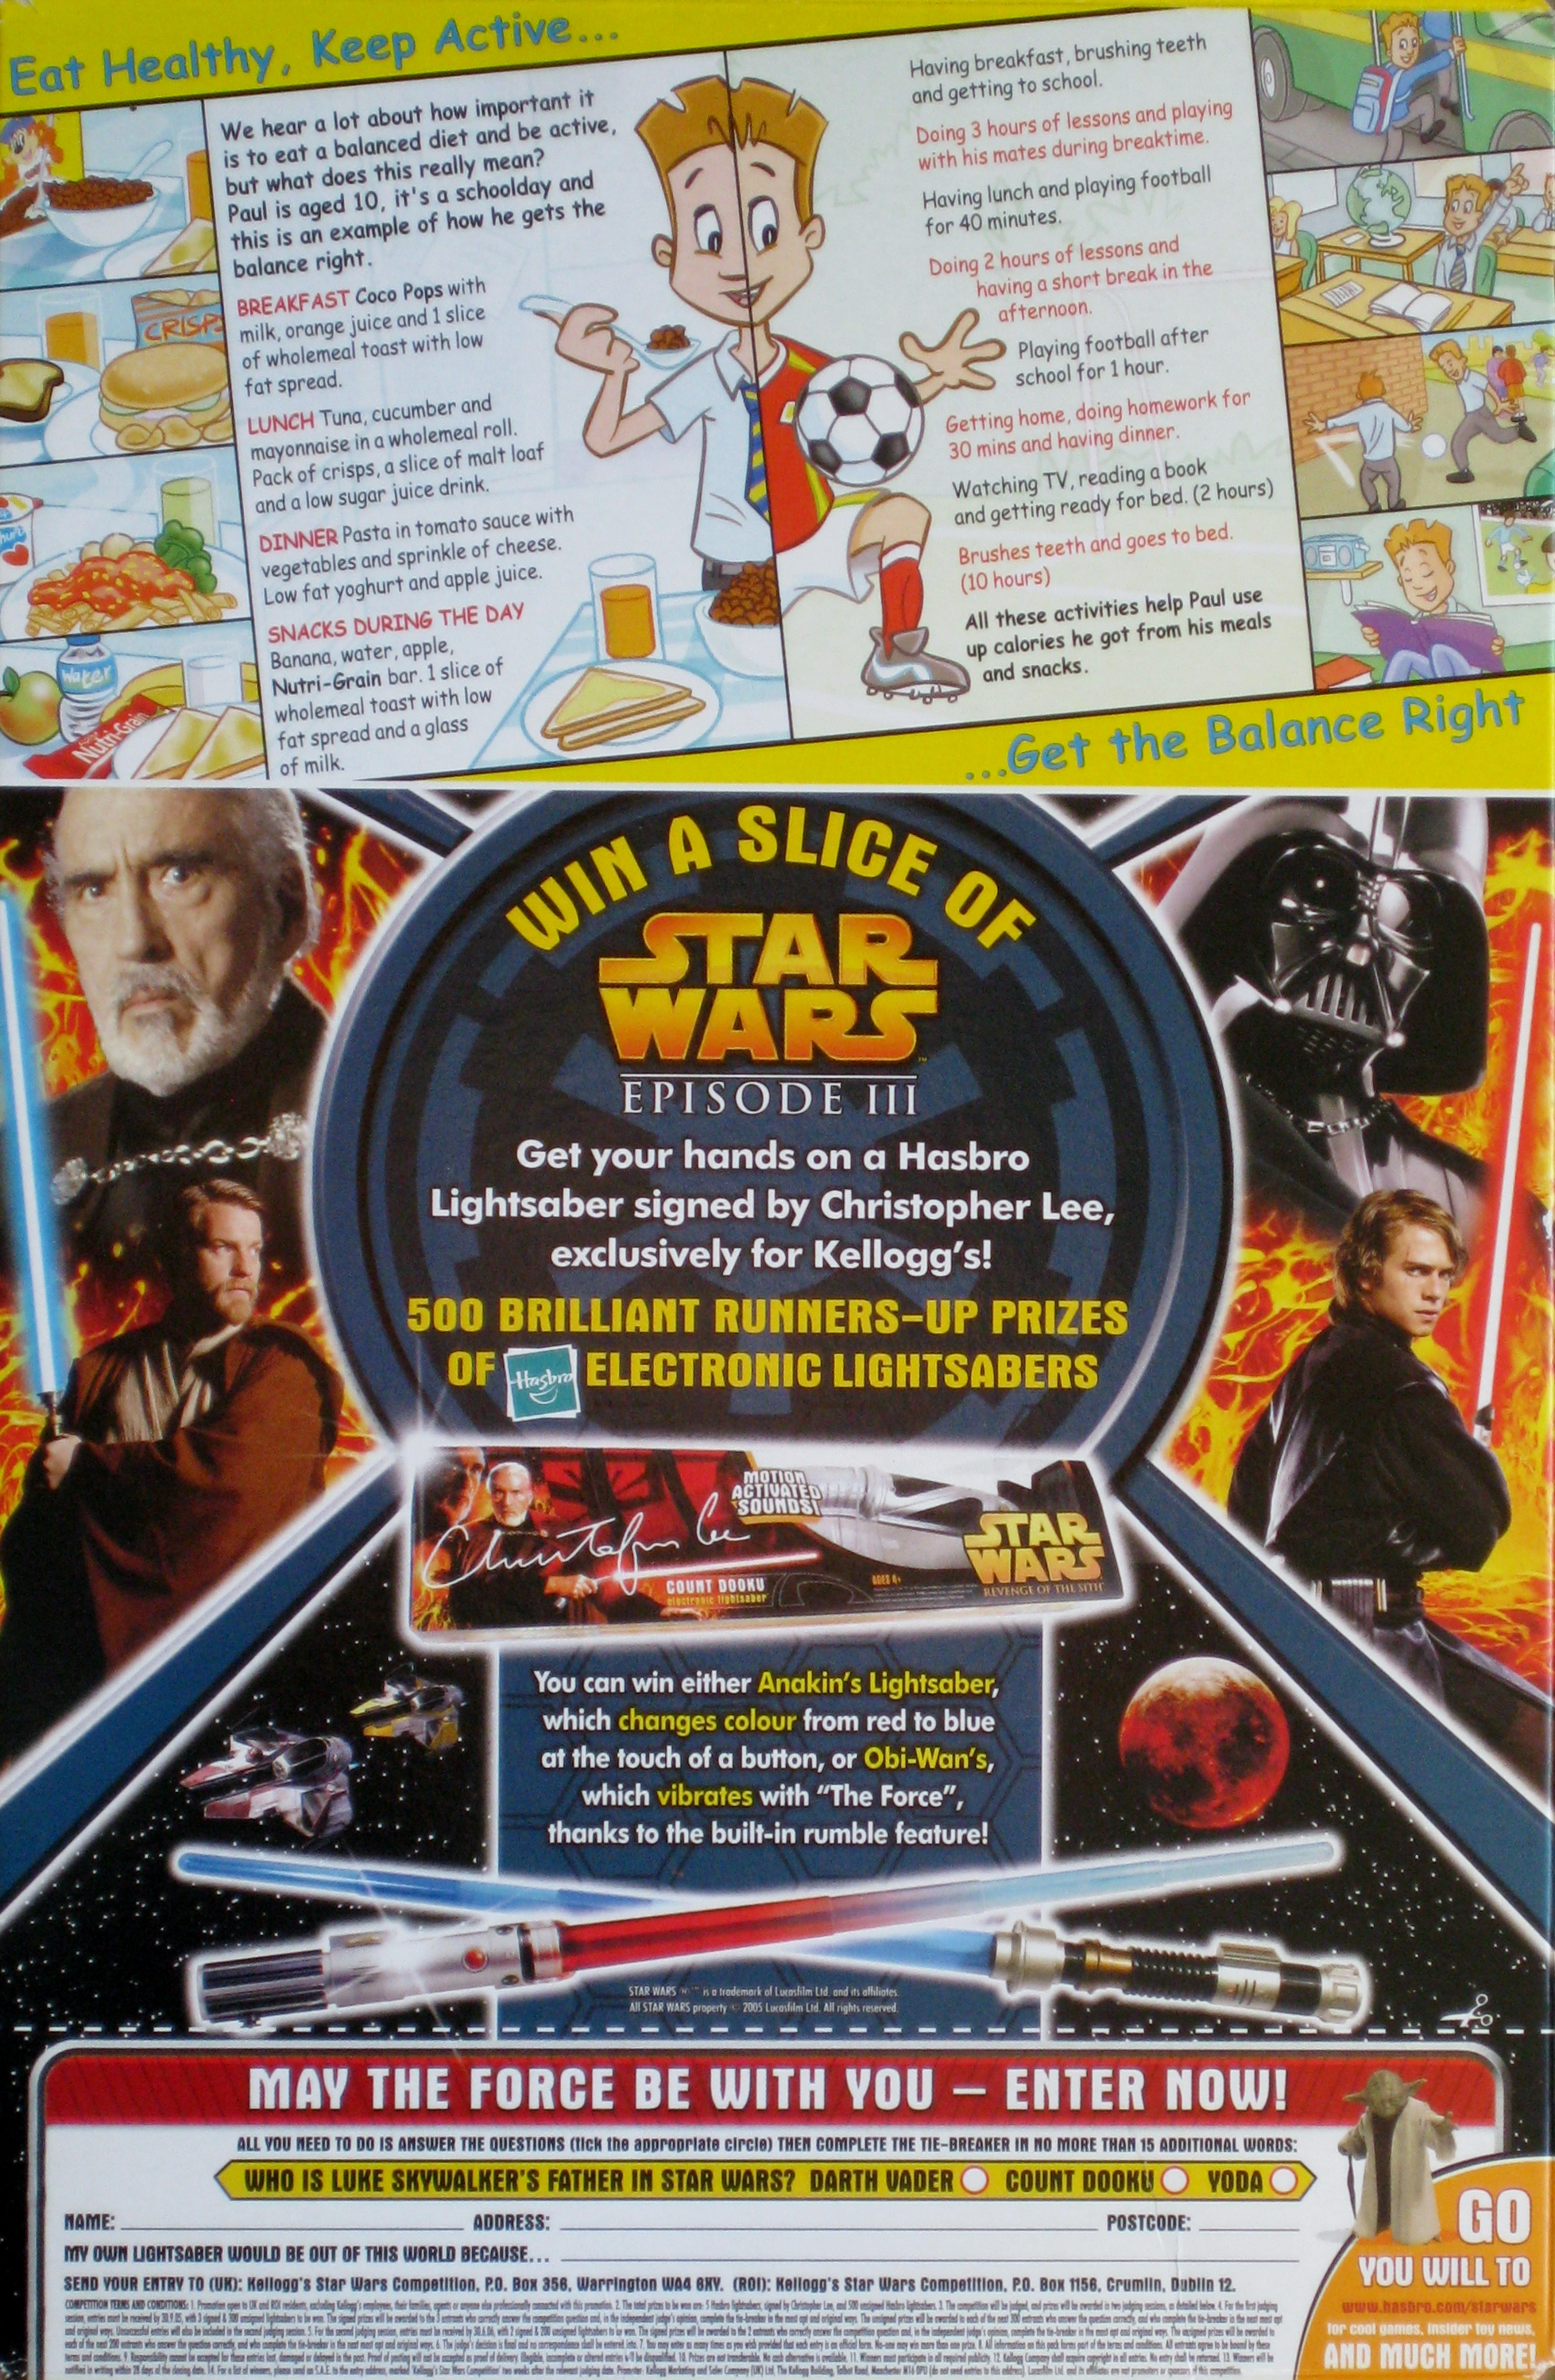 2005 Coco Pops Star Wars 3 competition